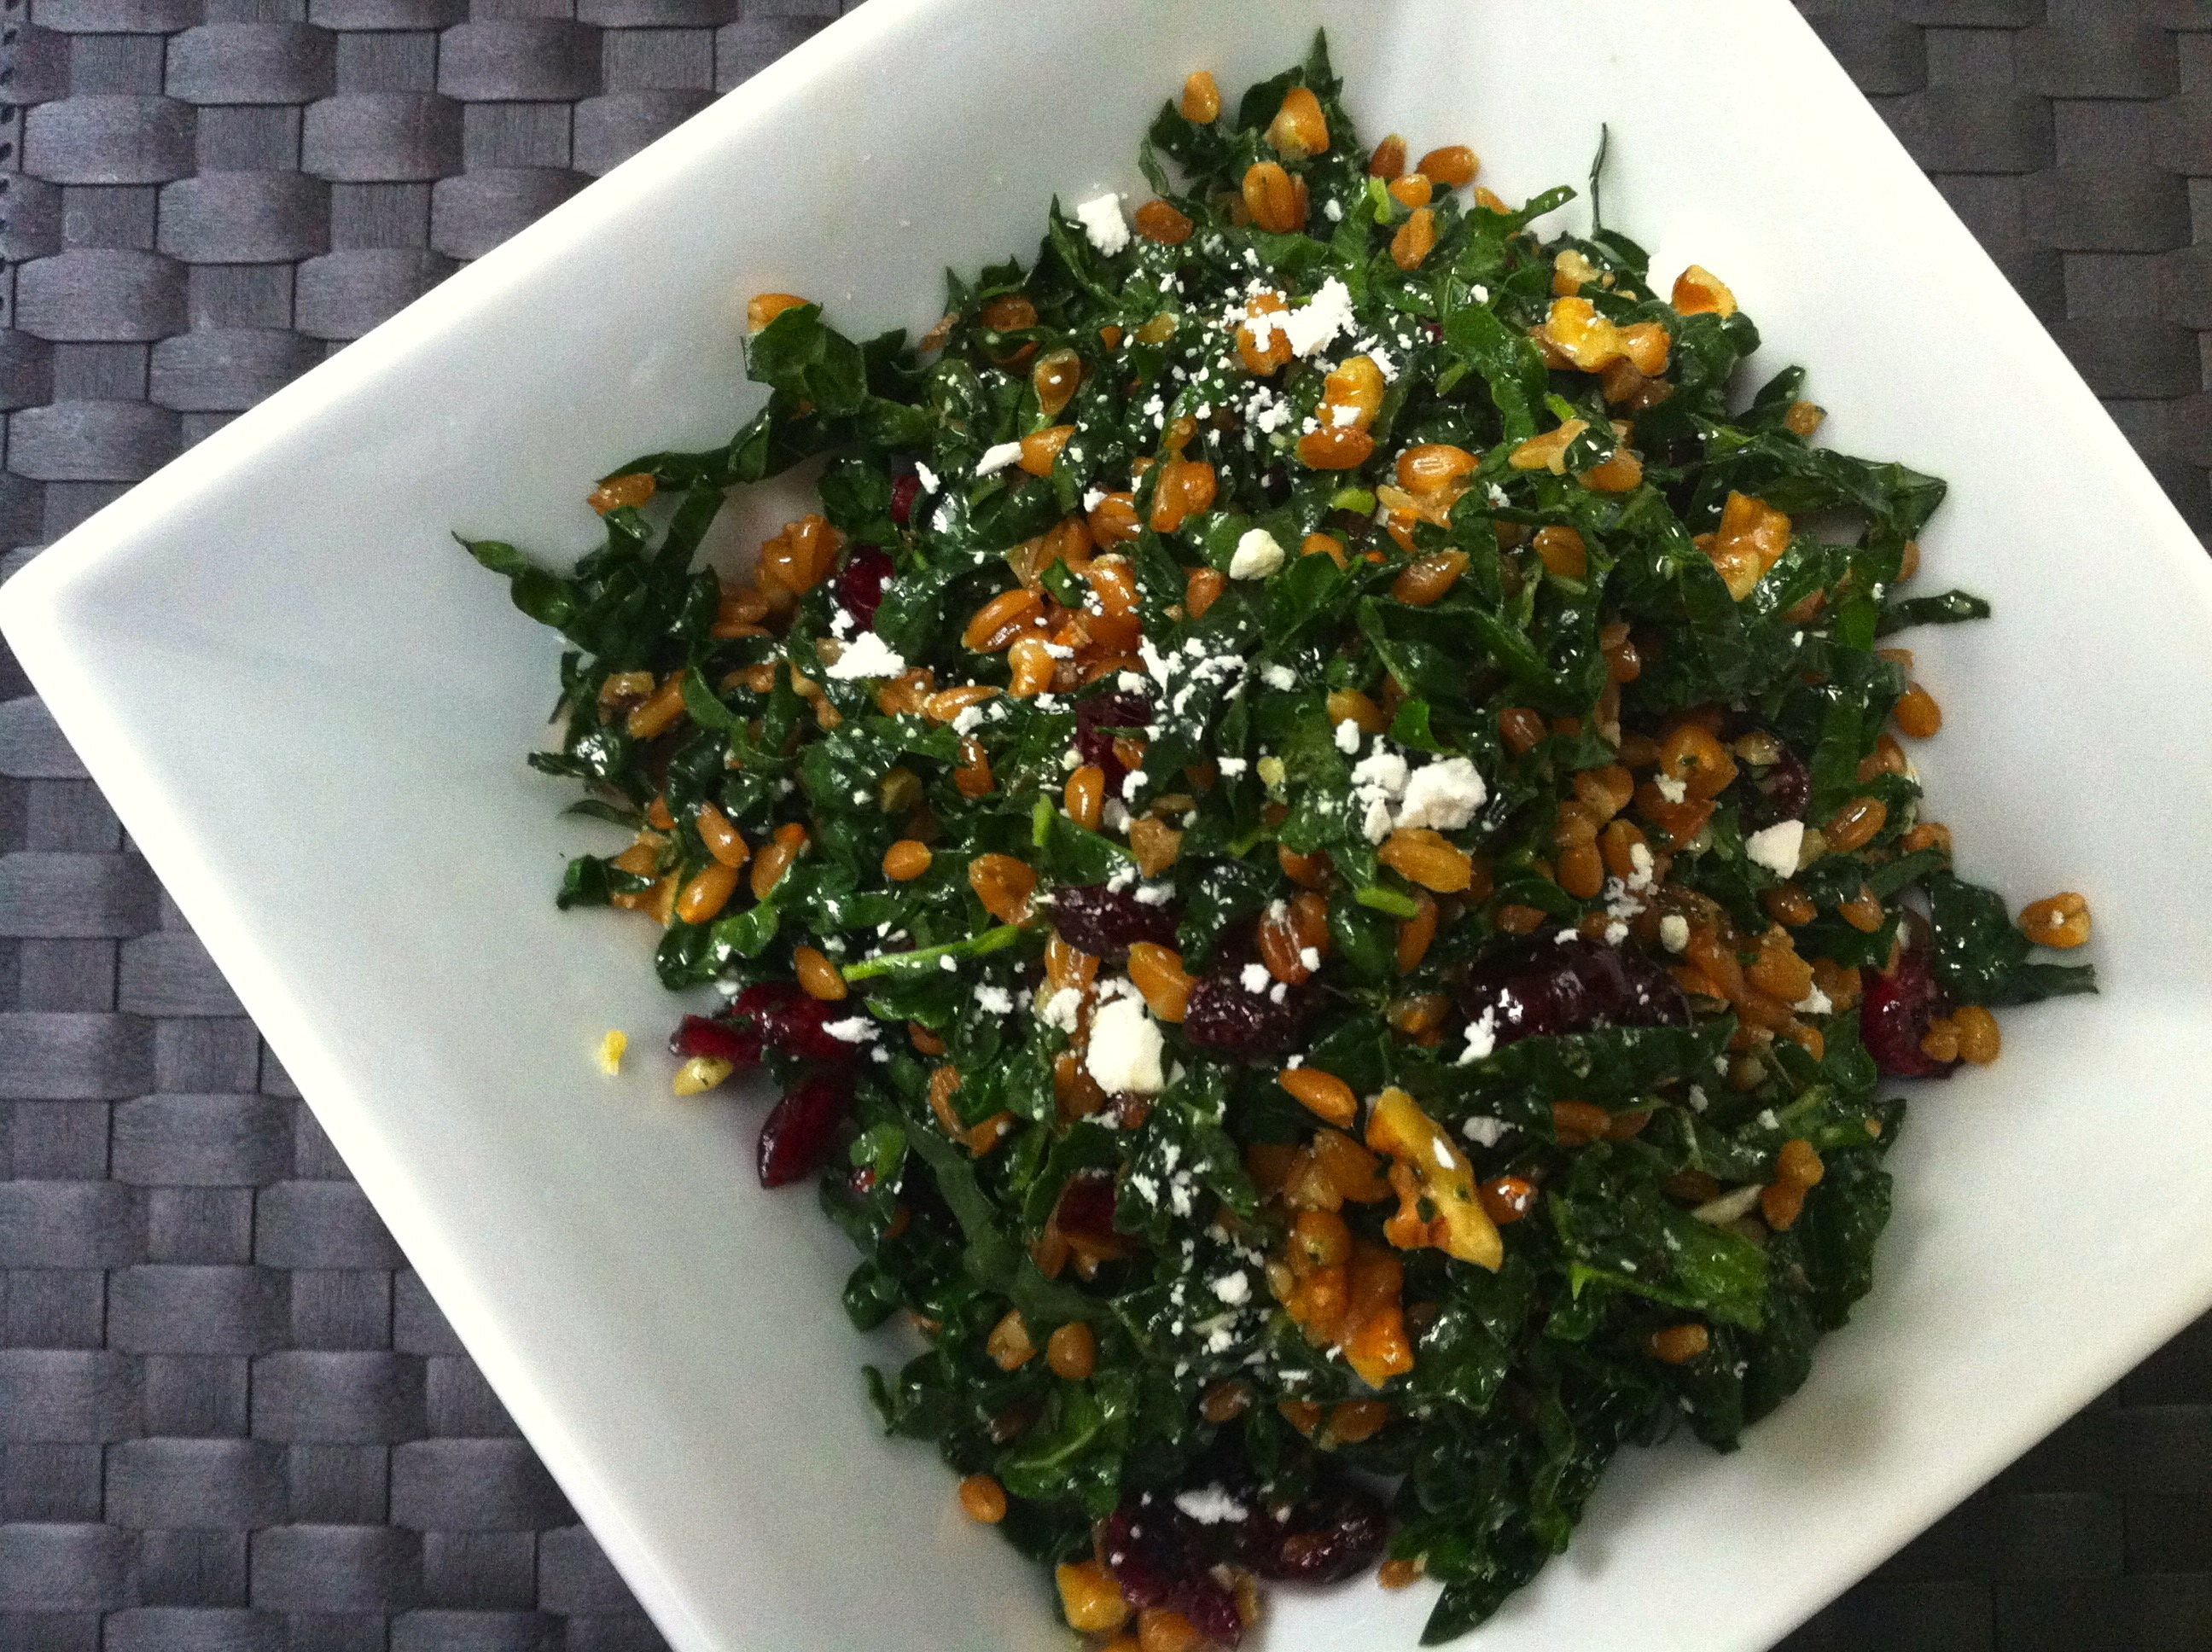 Lacinato Kale Salad With Roasted Squash Recipes — Dishmaps